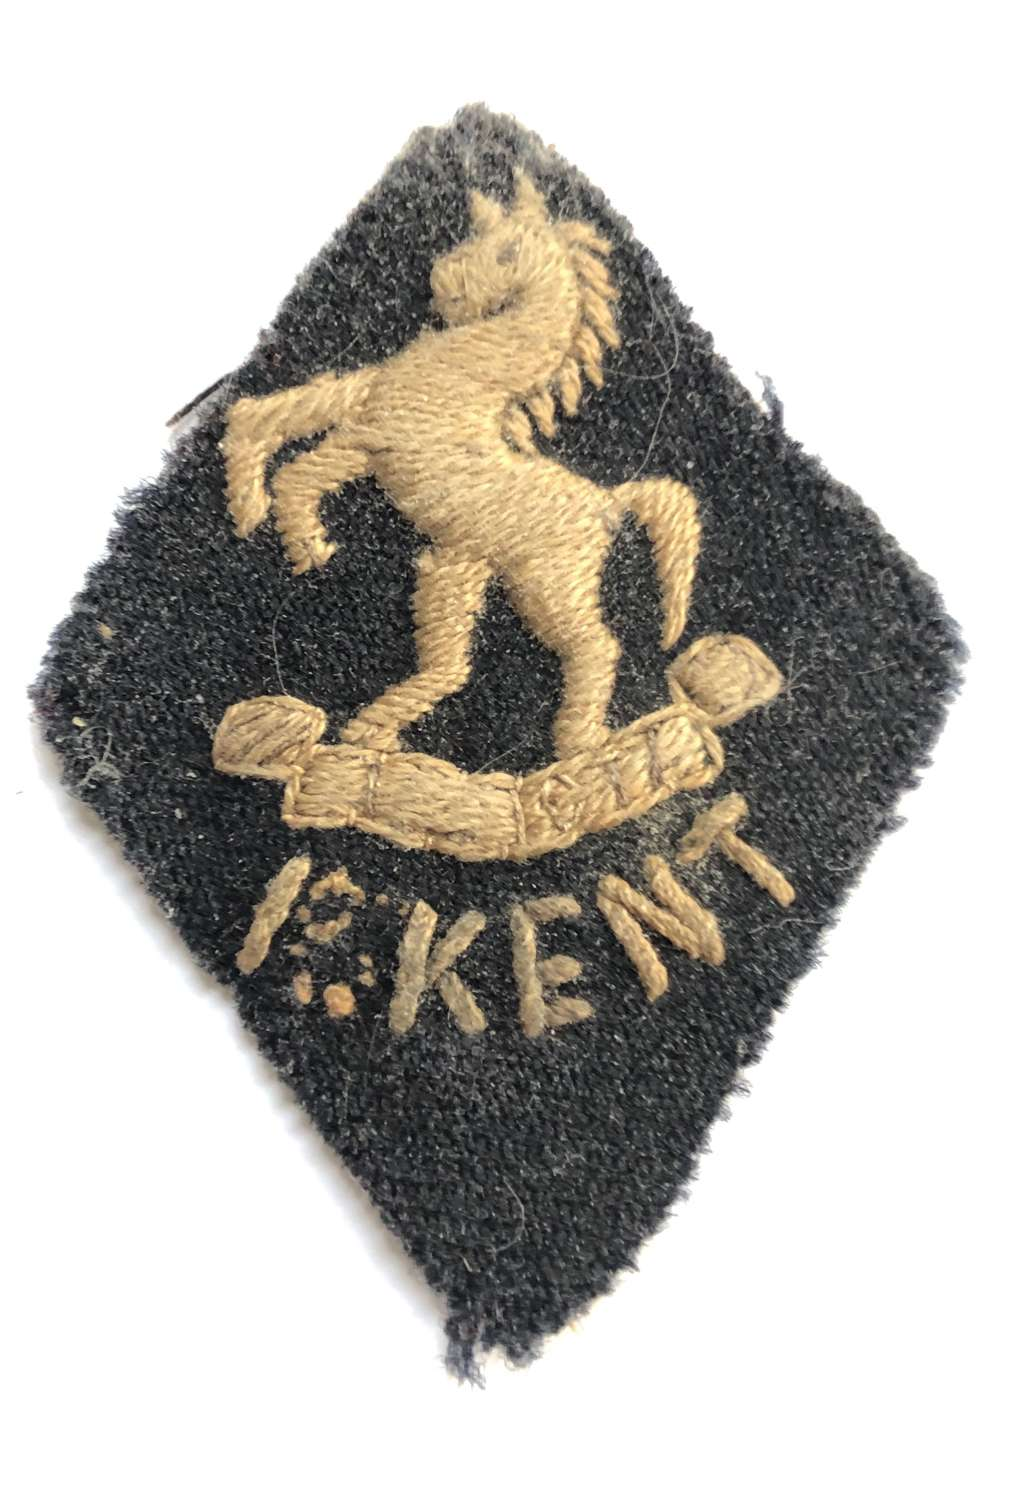 1/1st Bn. Kent Cyclists Foreign Service helmet pagri badge c1916